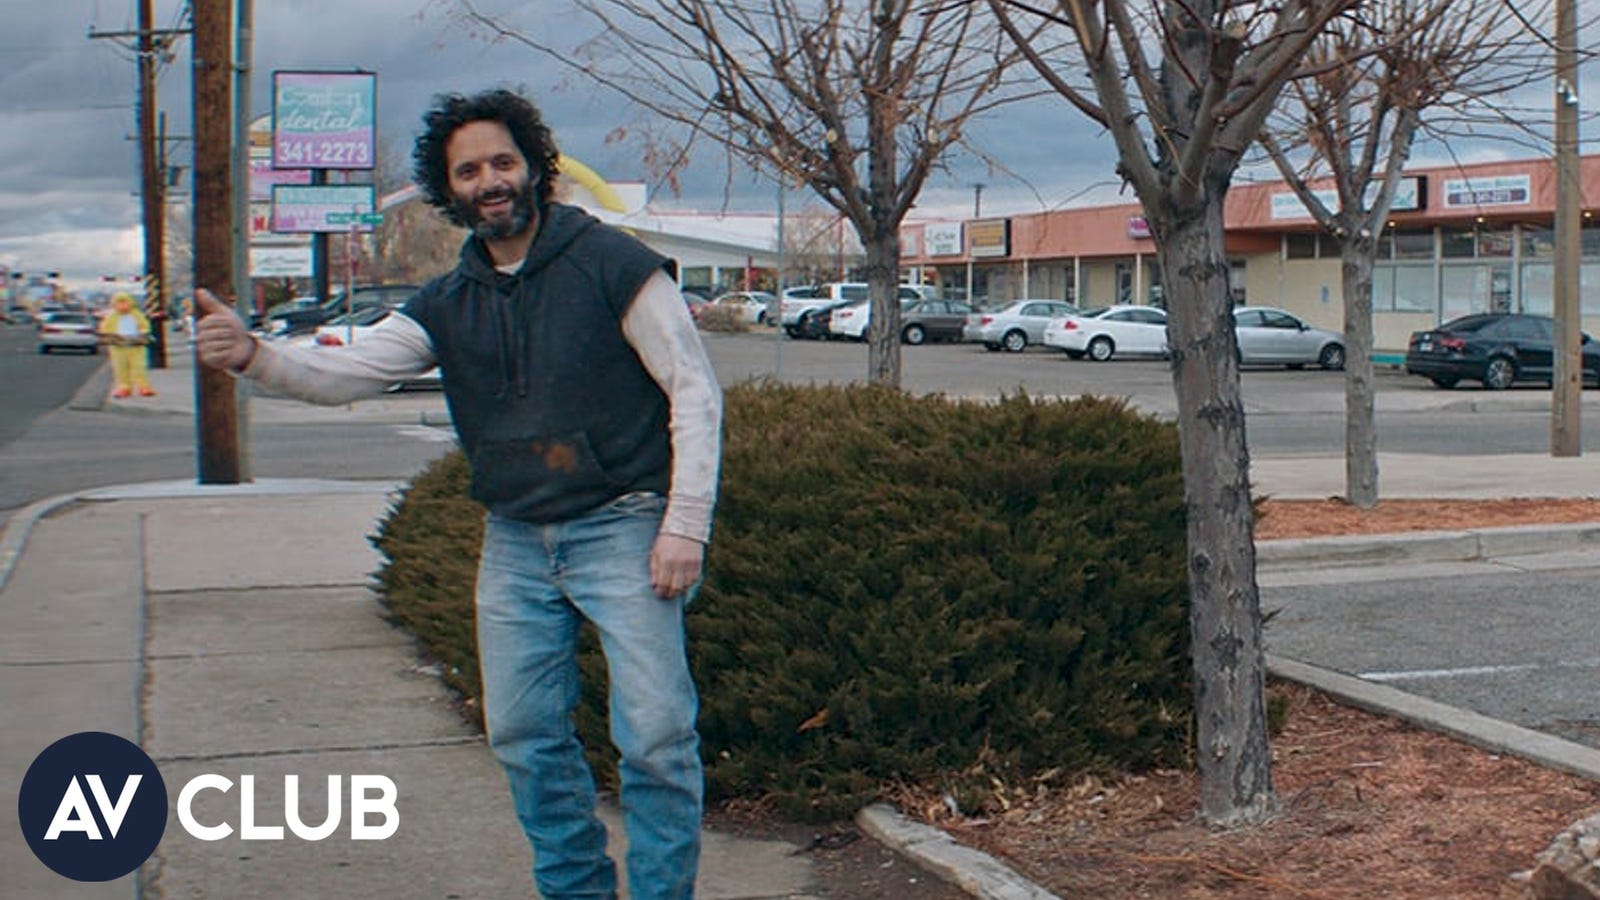 To no one's surprise, Jason Mantzoukas was making everyone break on the set of his new movie